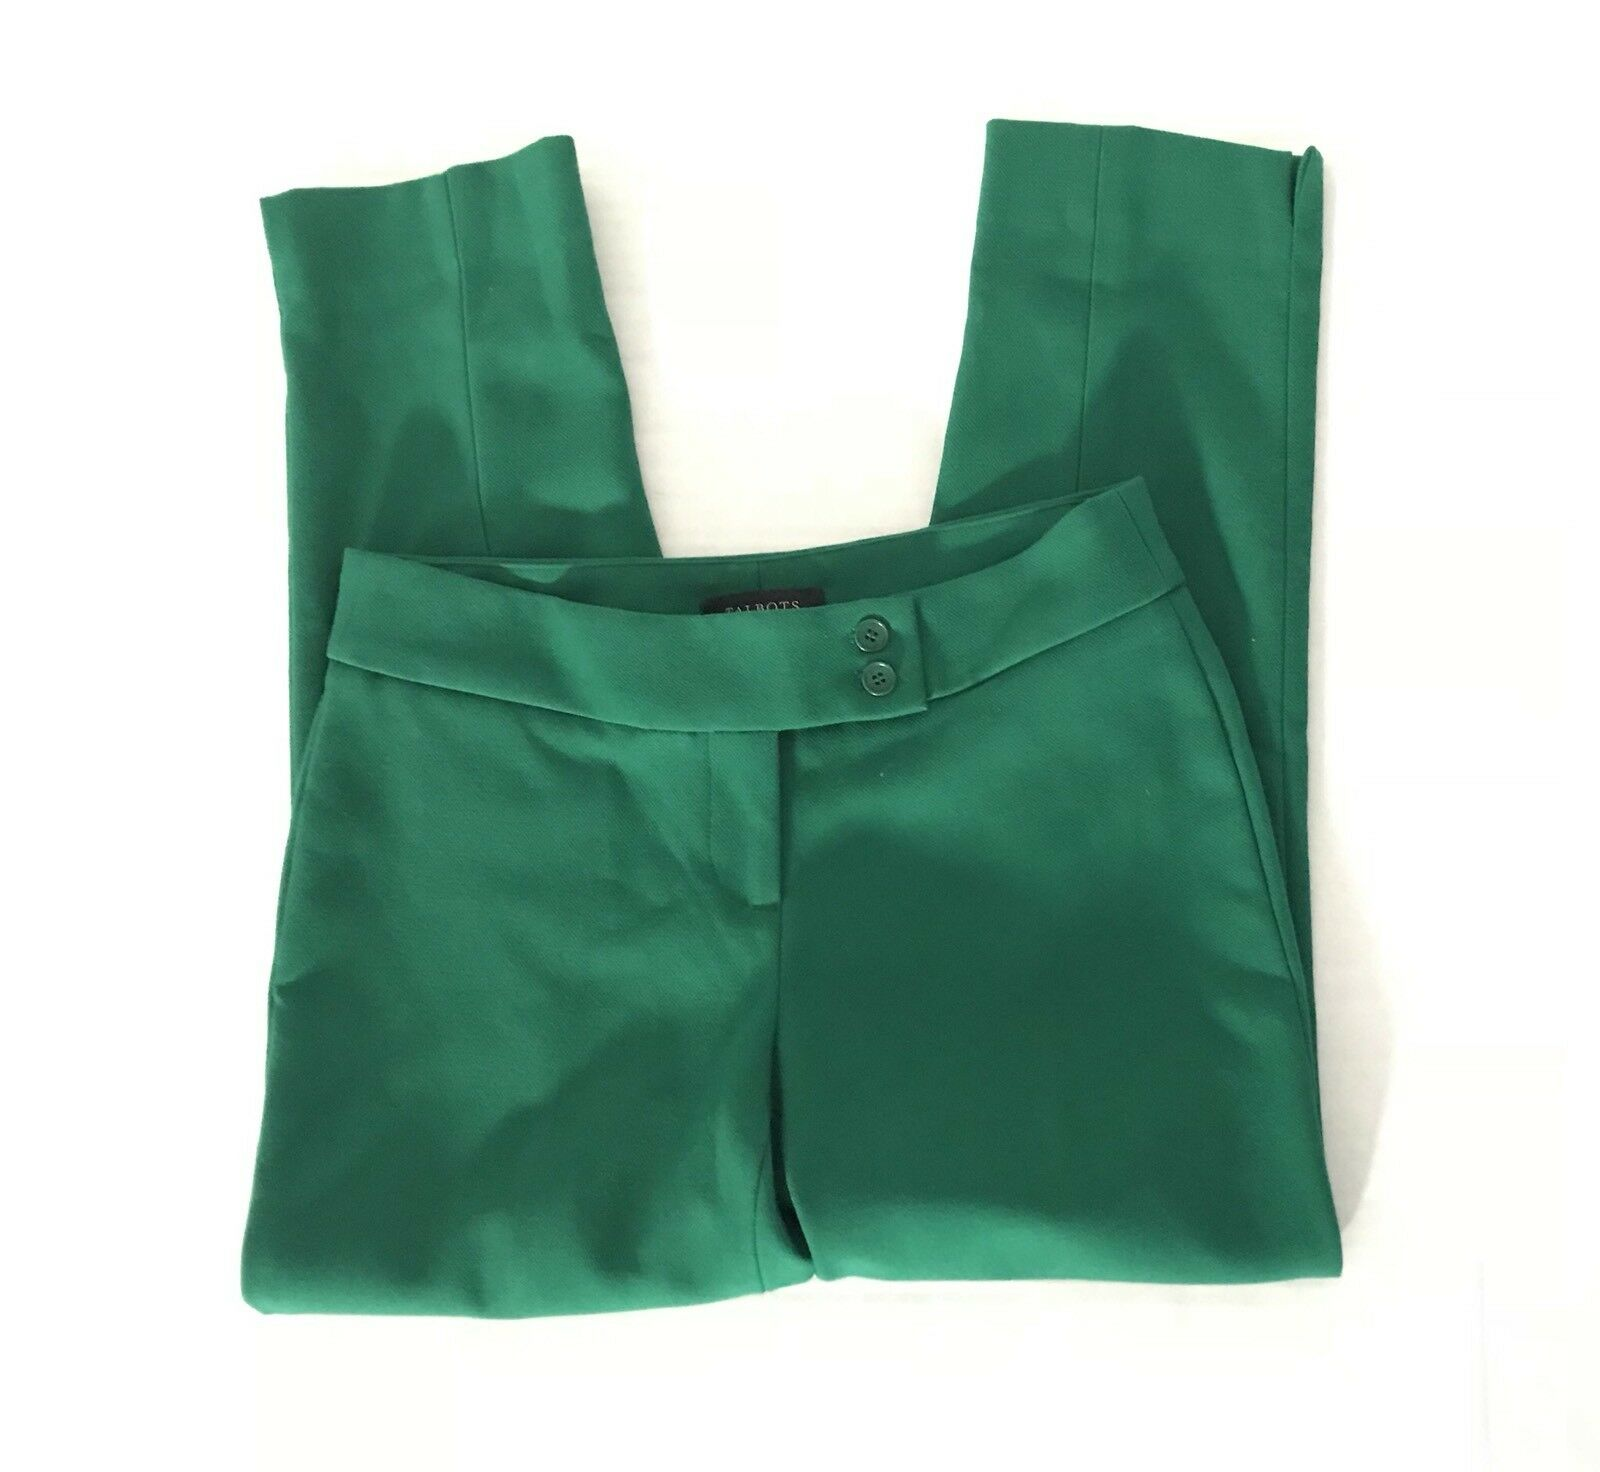 Talbots D4 Womens Capris Cropped Ankle Trouser Flat Size 2 Petites Green